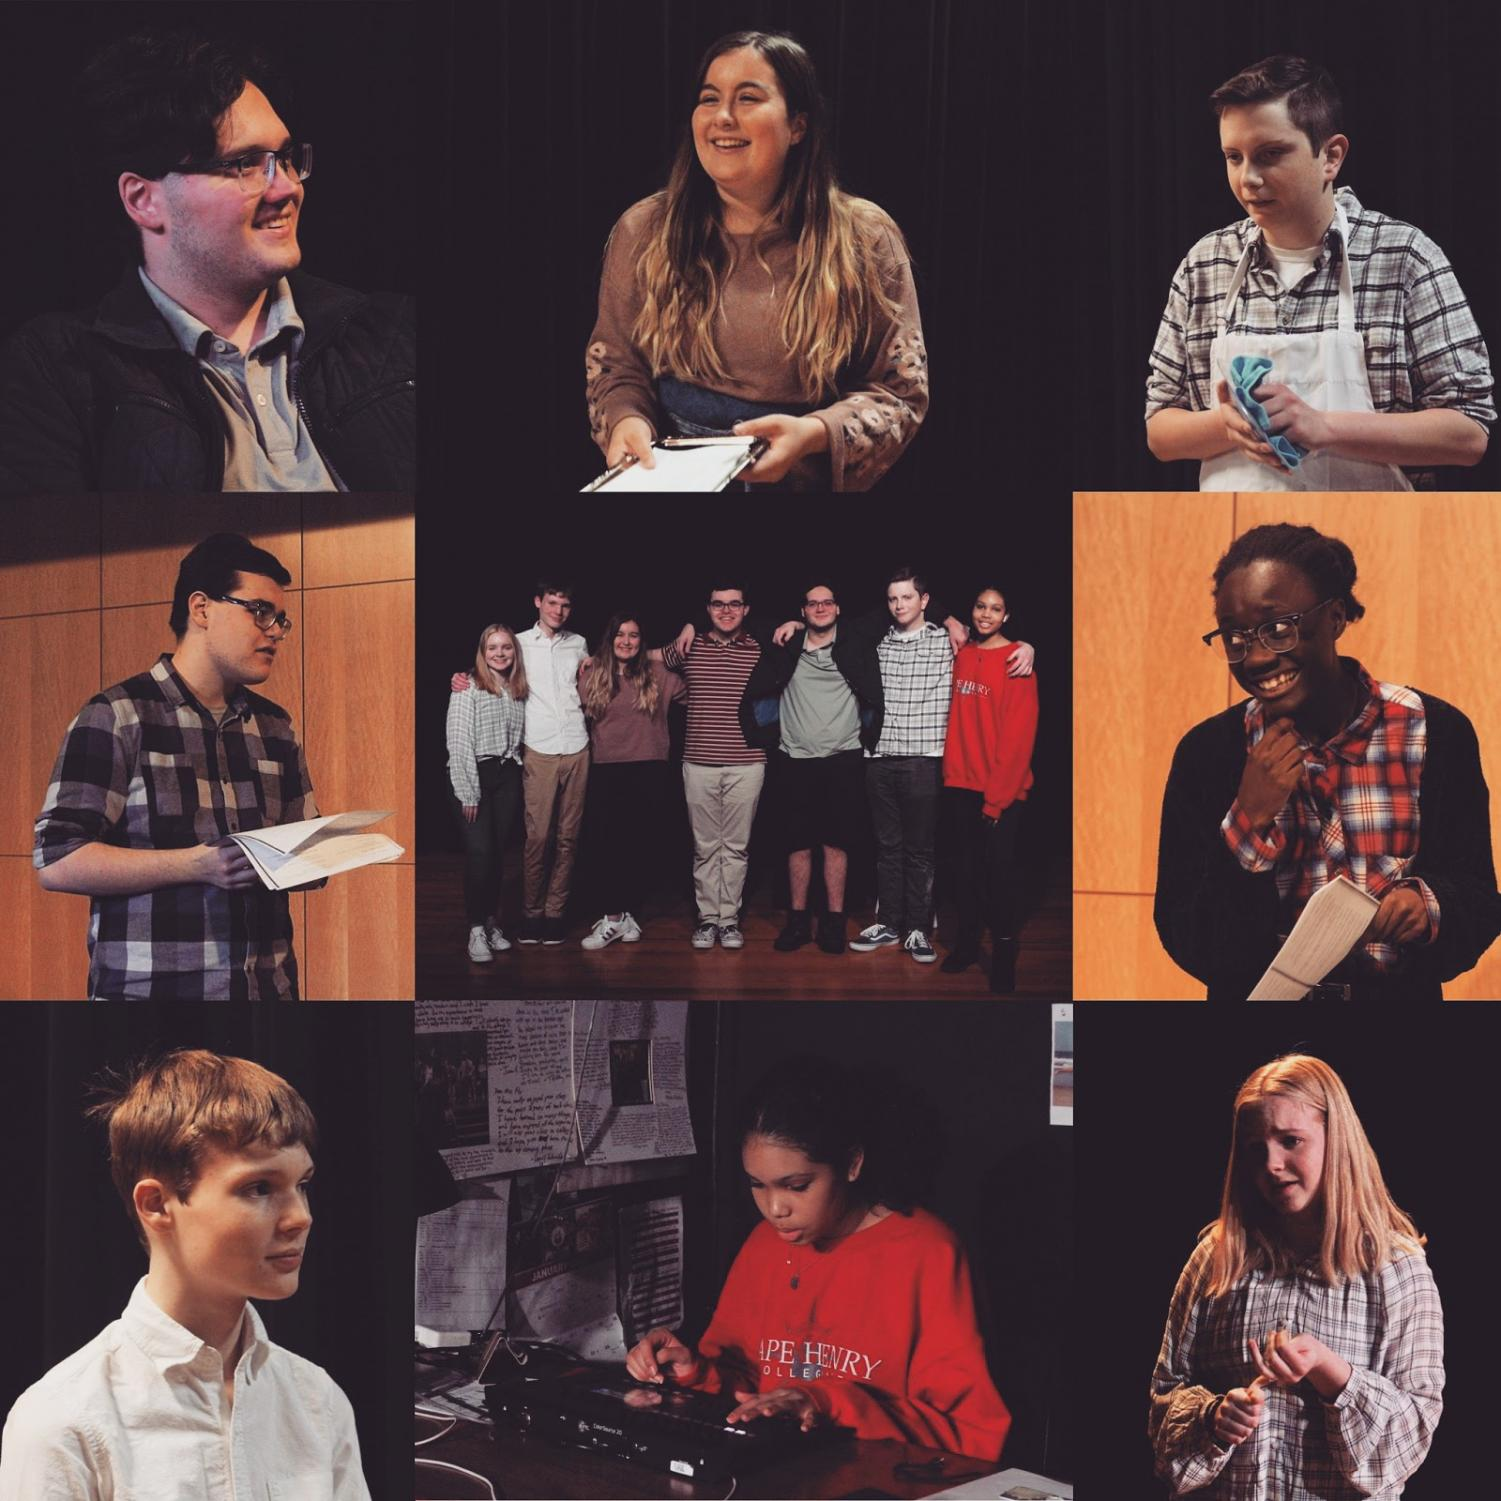 The+cast+of+the+Student+Directed+Play+worked+diligently+and+put+in+hours+of+rehearsal+to+produce+a+comedic%2C+SNL-inspired+show+on+January+31%2C+2020.